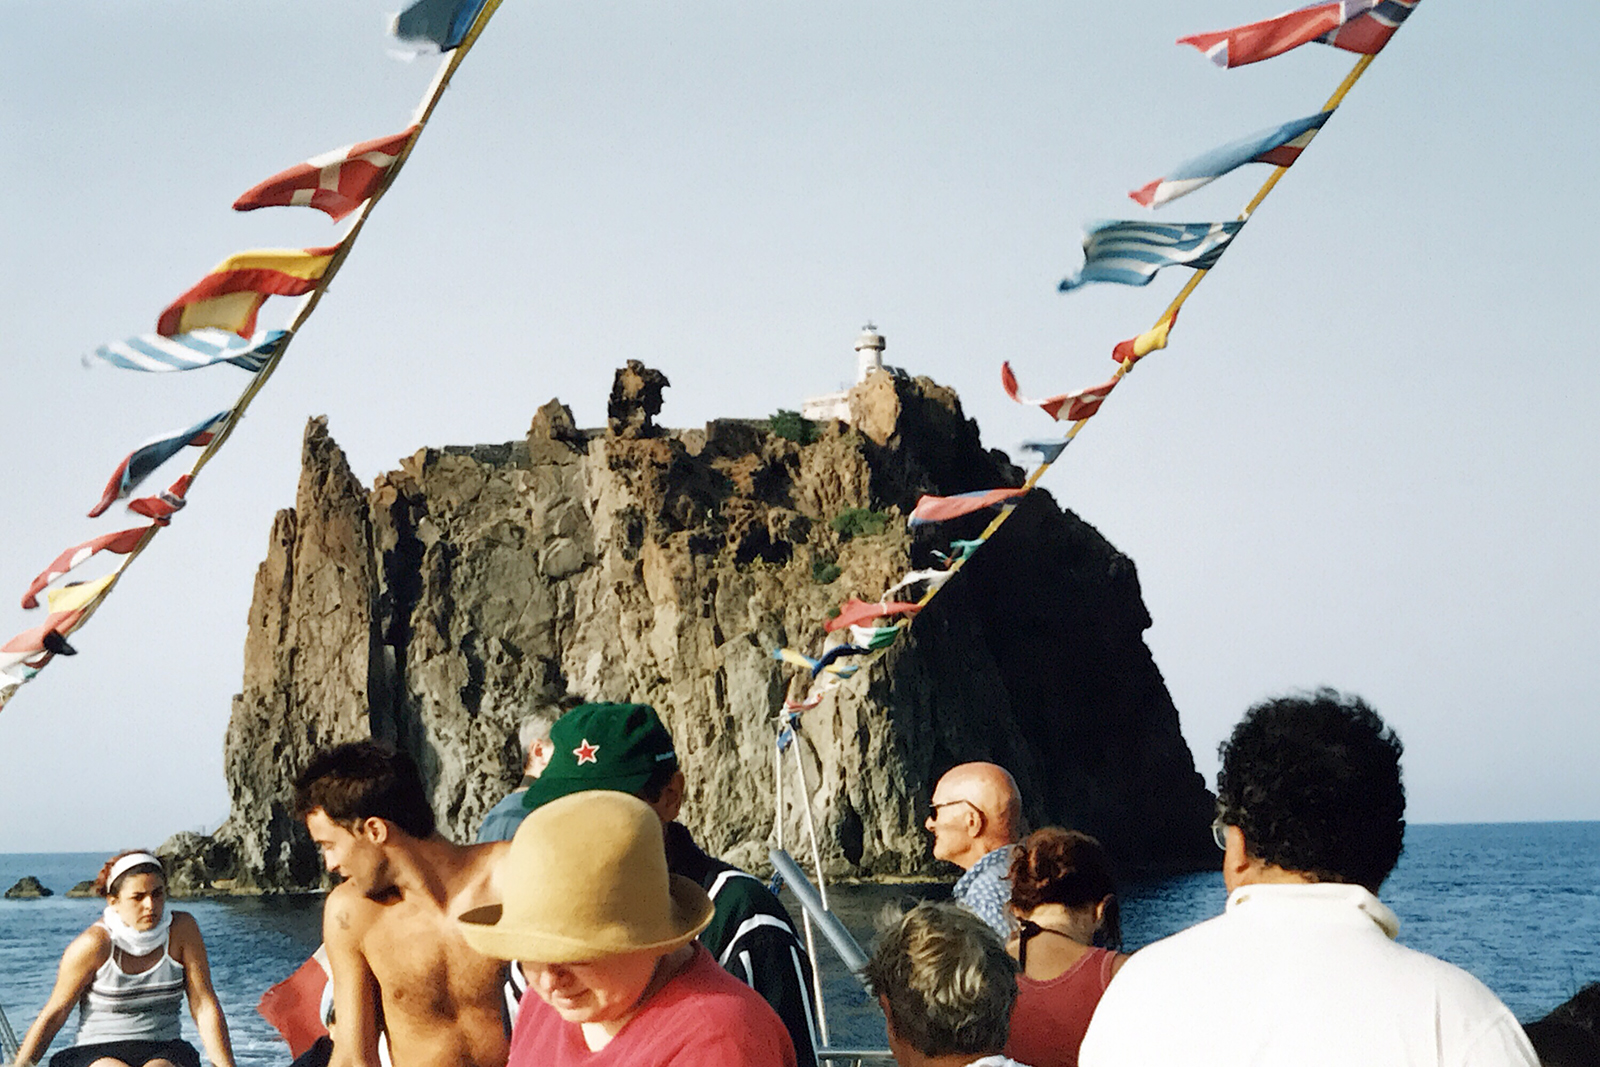 On a boat in Sicily, 2002